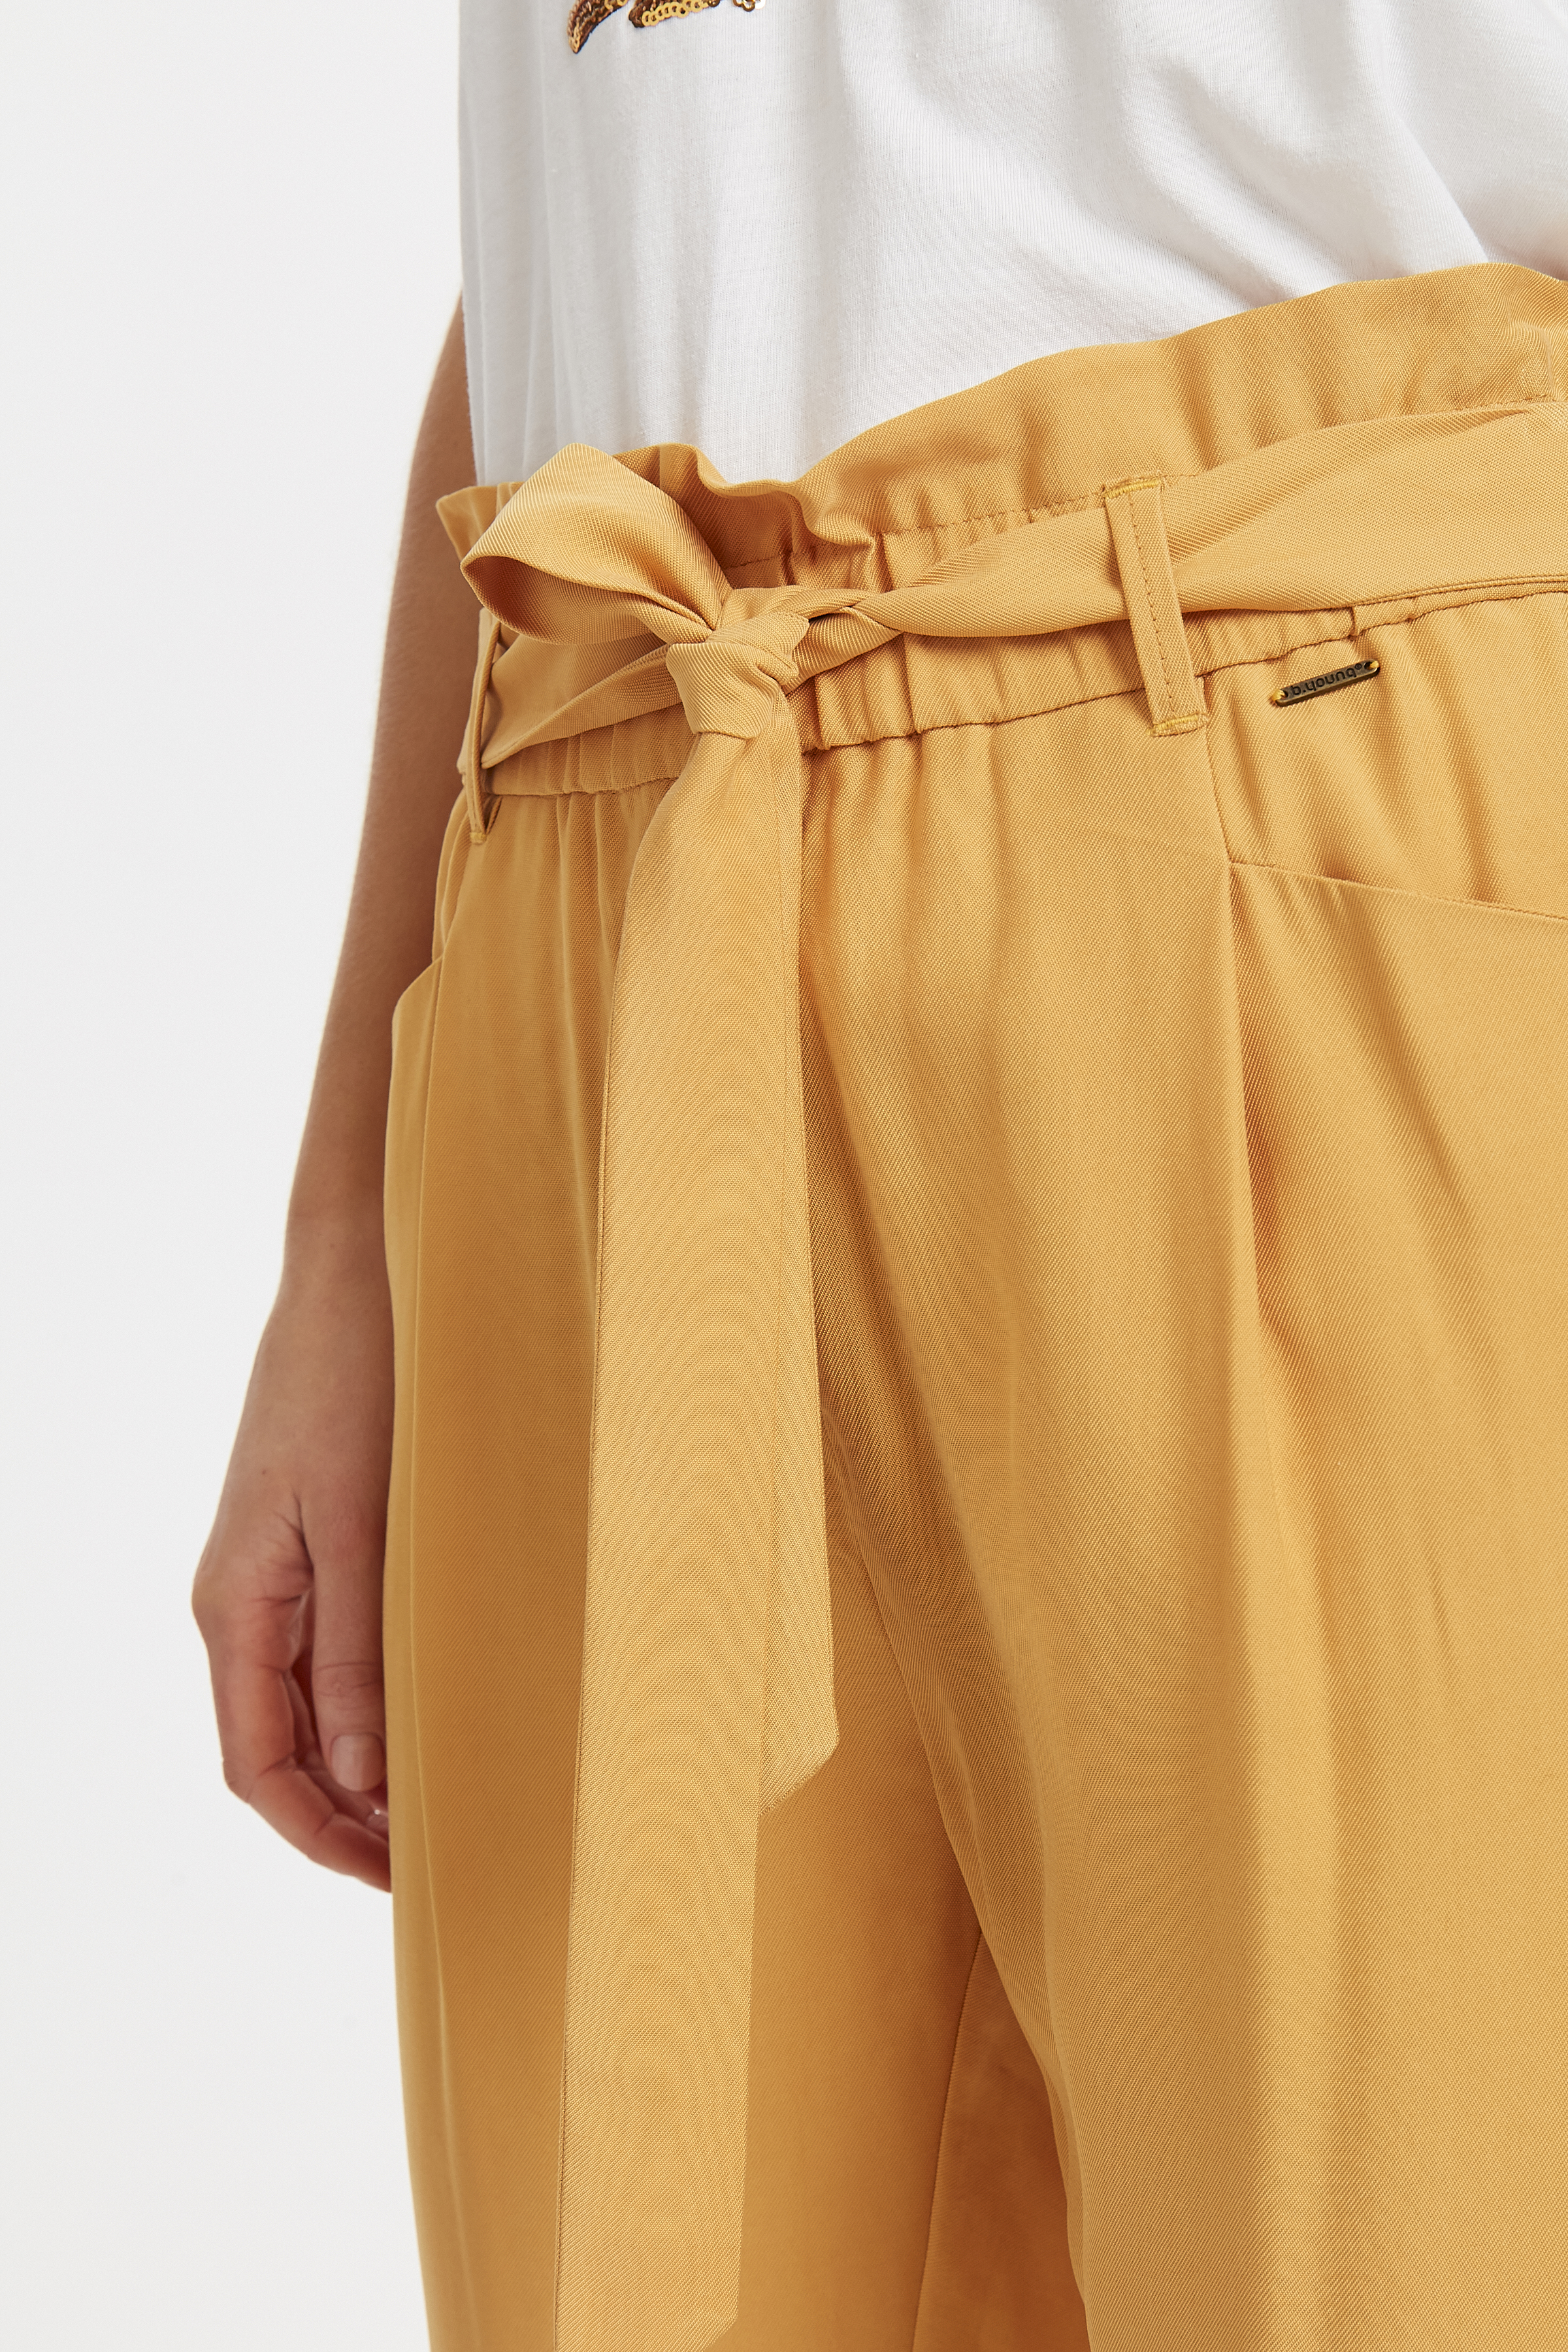 Golden Glow Pants Casual fra b.young – Køb Golden Glow Pants Casual fra str. 34-44 her